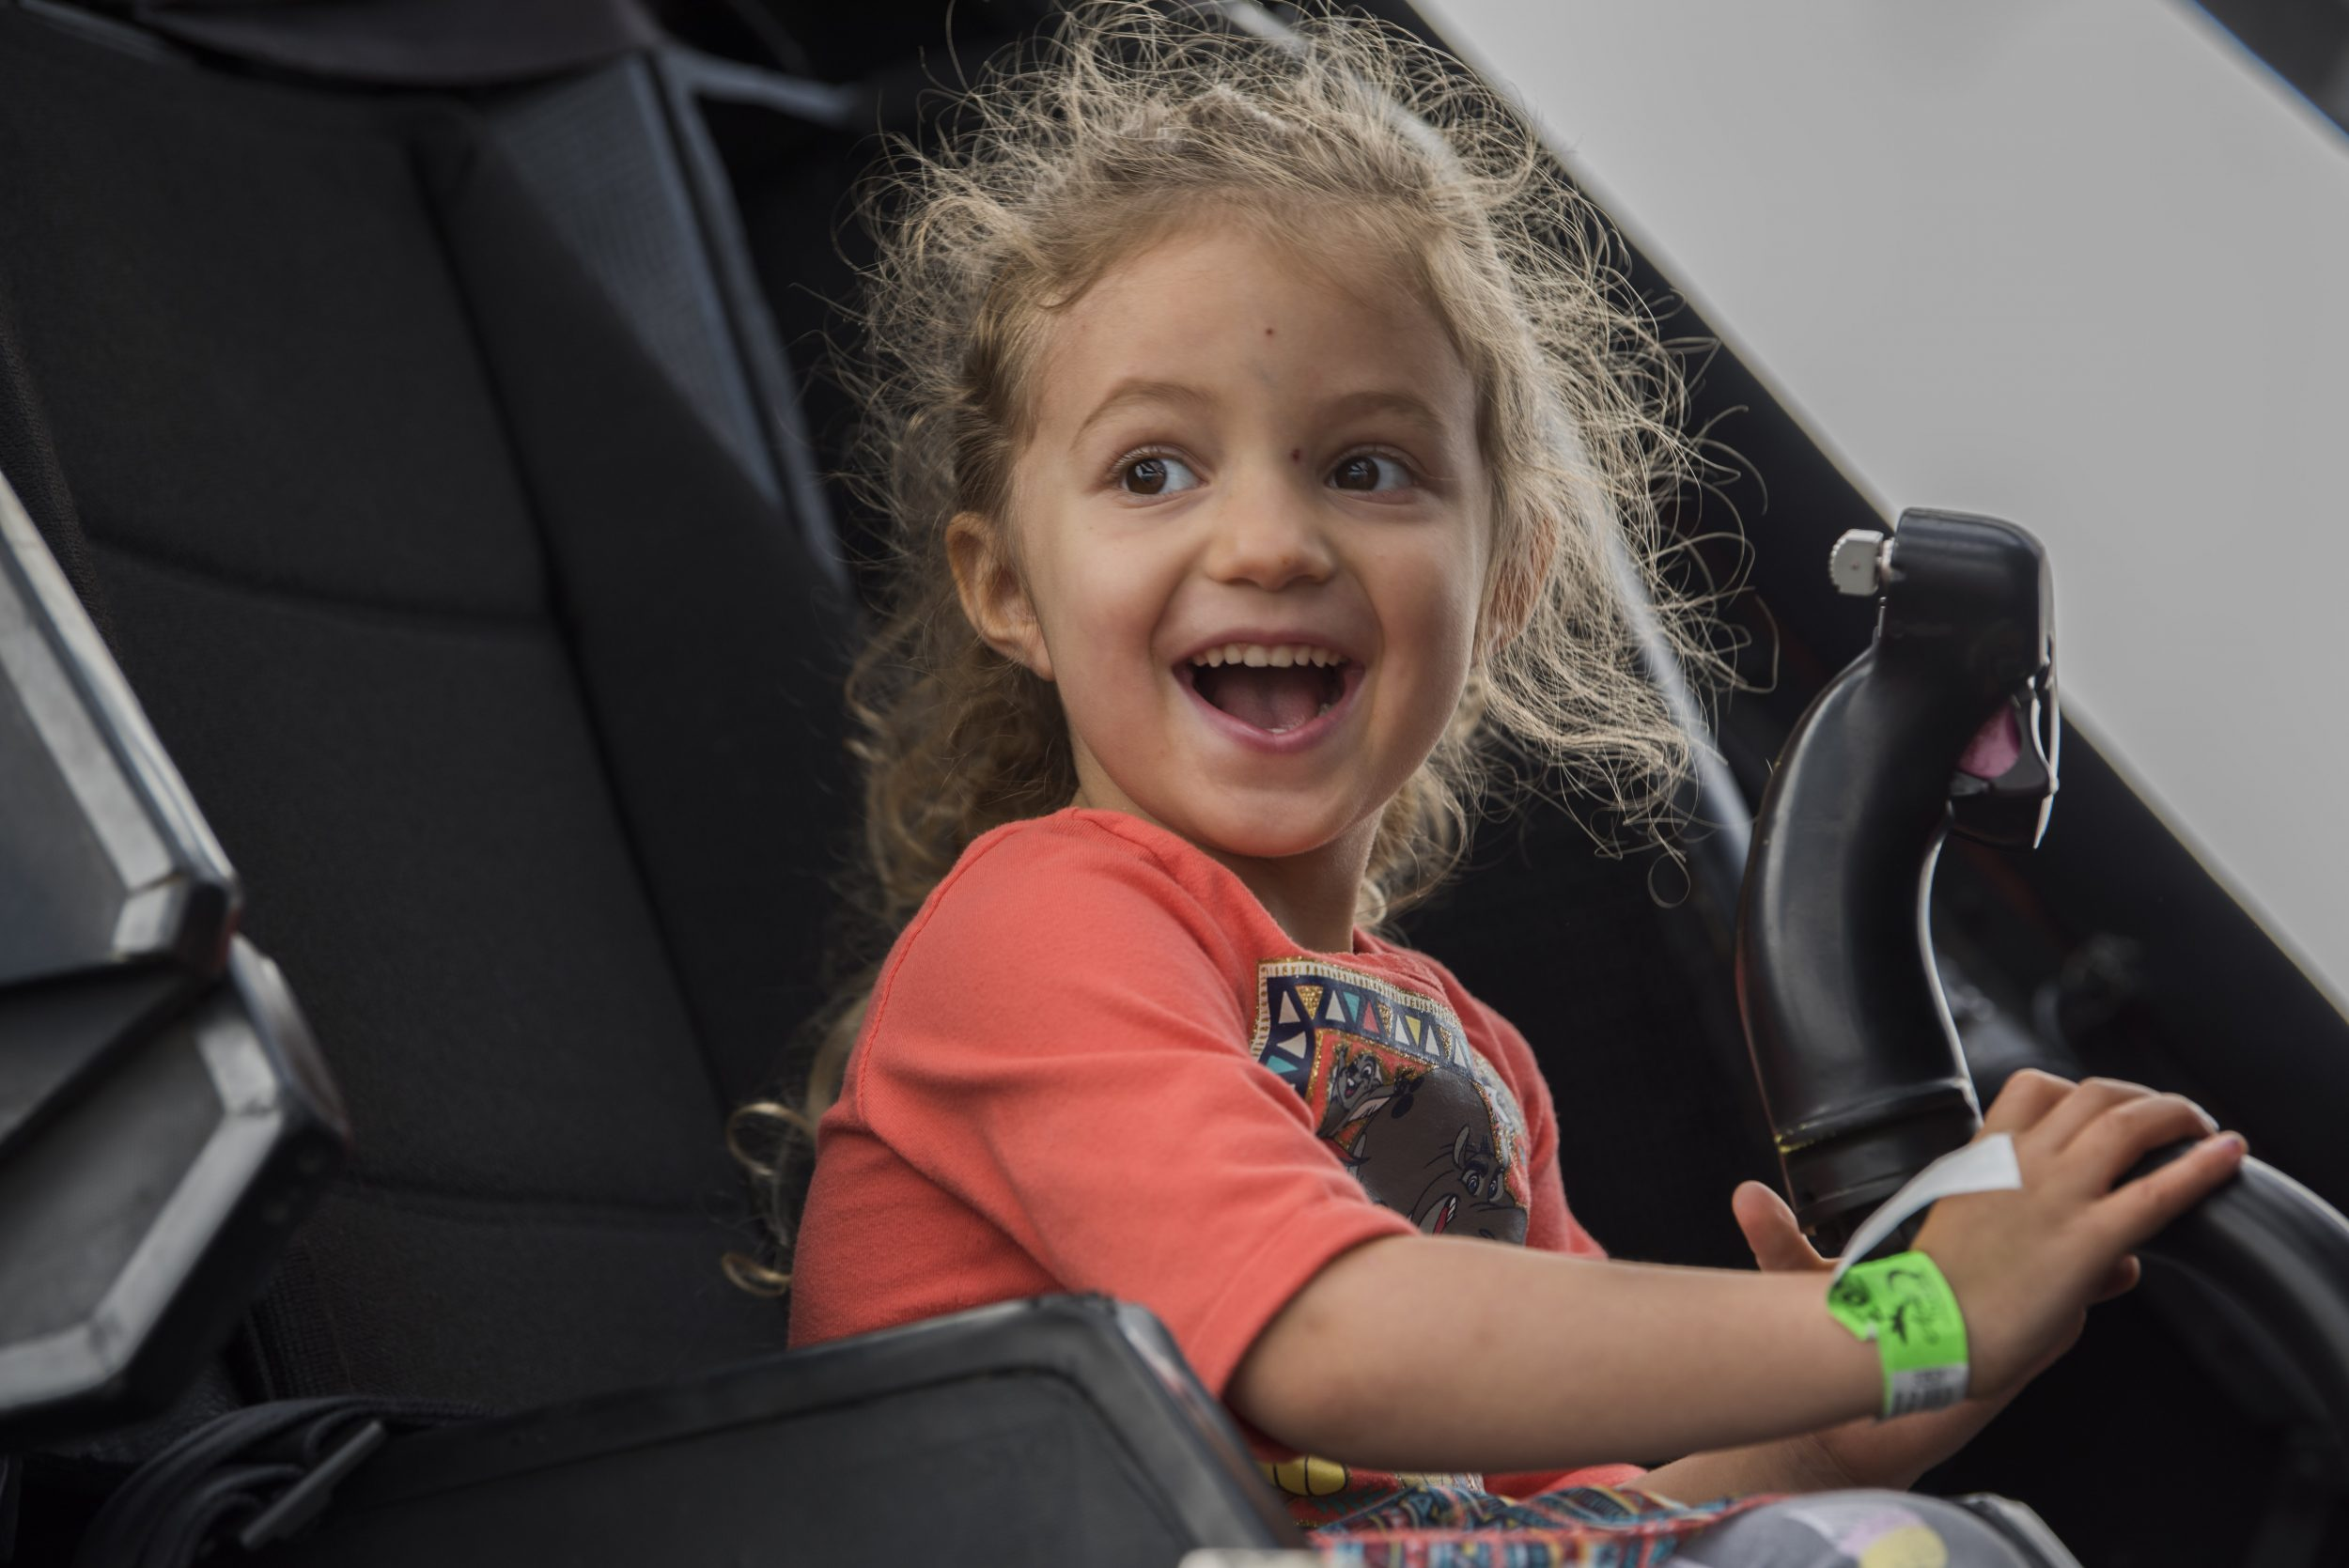 Emily Butcher, 4, sits in a U.S. Army AH-64 Apache attack helicopter during the Arctic Thunder Open House at Joint Base Elmendorf-Richardson, Alaska, June 30, 2018. During the biennial open house, JBER opens its gates to the public and hosts multiple performers including the U.S. Air Force Thunderbirds, JBER Joint Forces Demonstration and the U.S. Air Force F-22 Raptor Demonstration Team. (U.S. Air Force photo by Airman 1st Class Caitlin Russell)